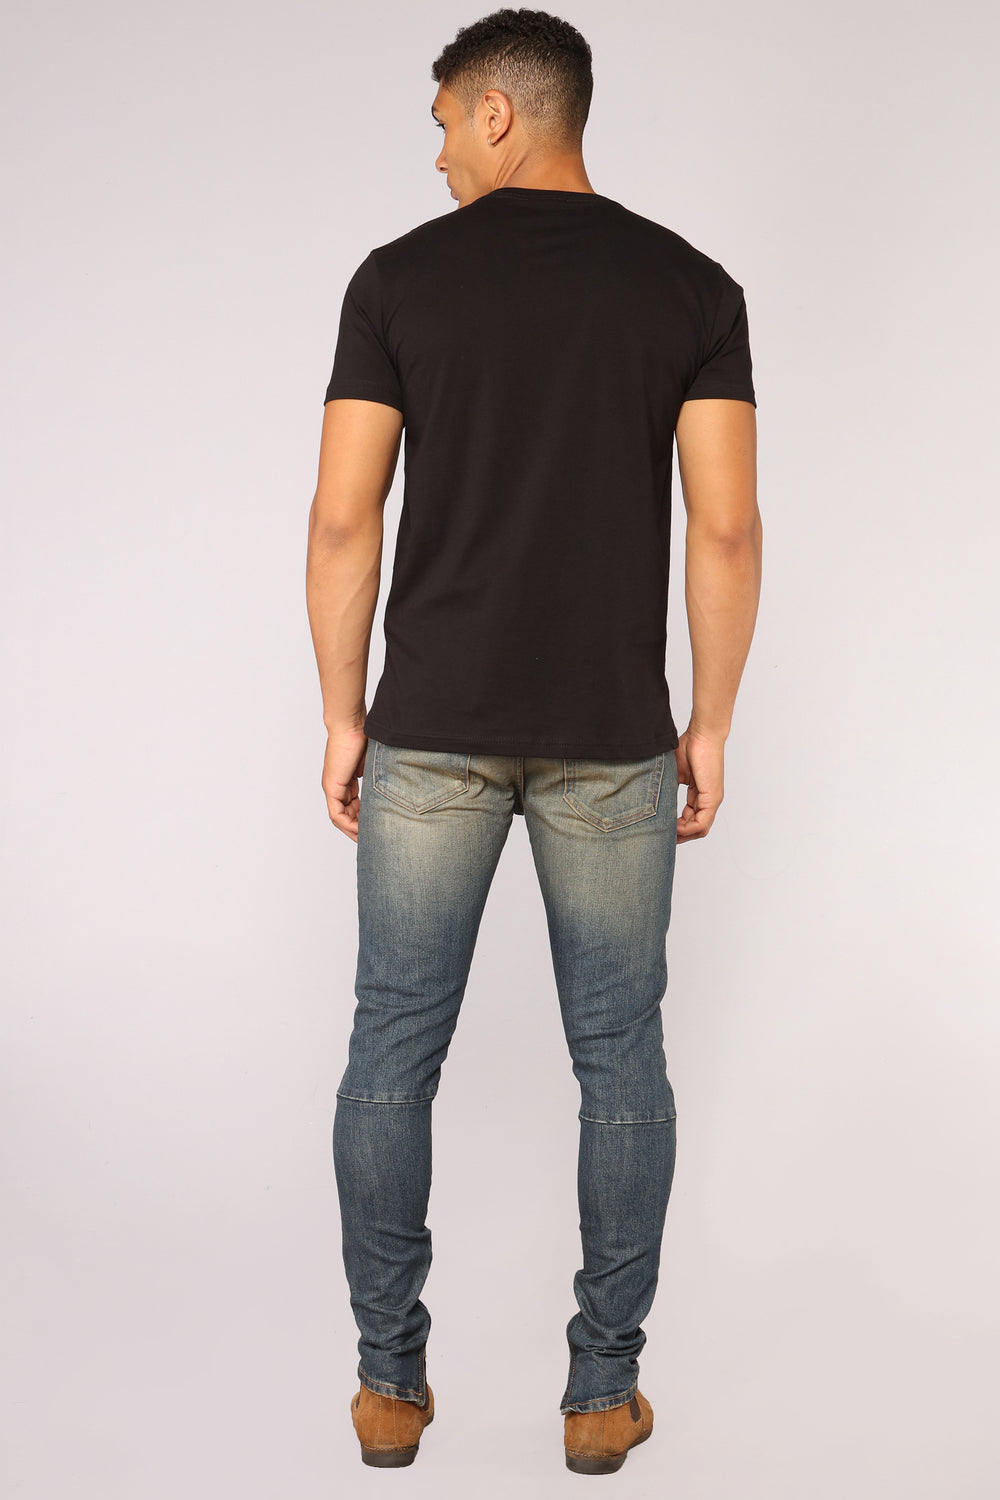 Essential V Neck Tee - Black